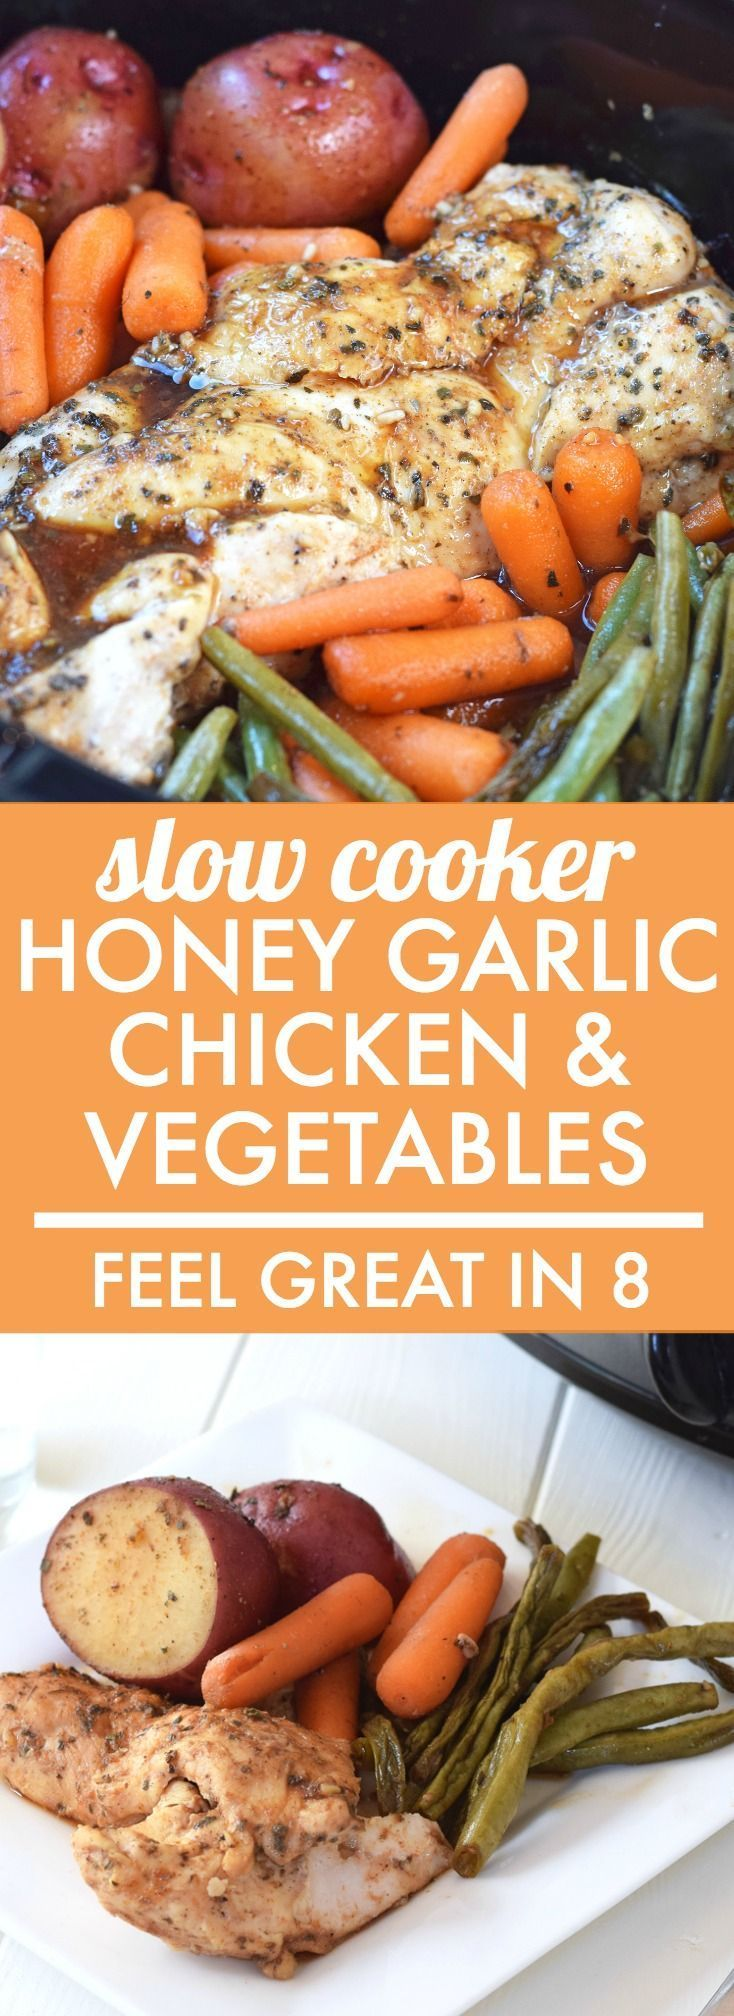 Crock pot creamy chicken stew style and fashion alex blog crockpot